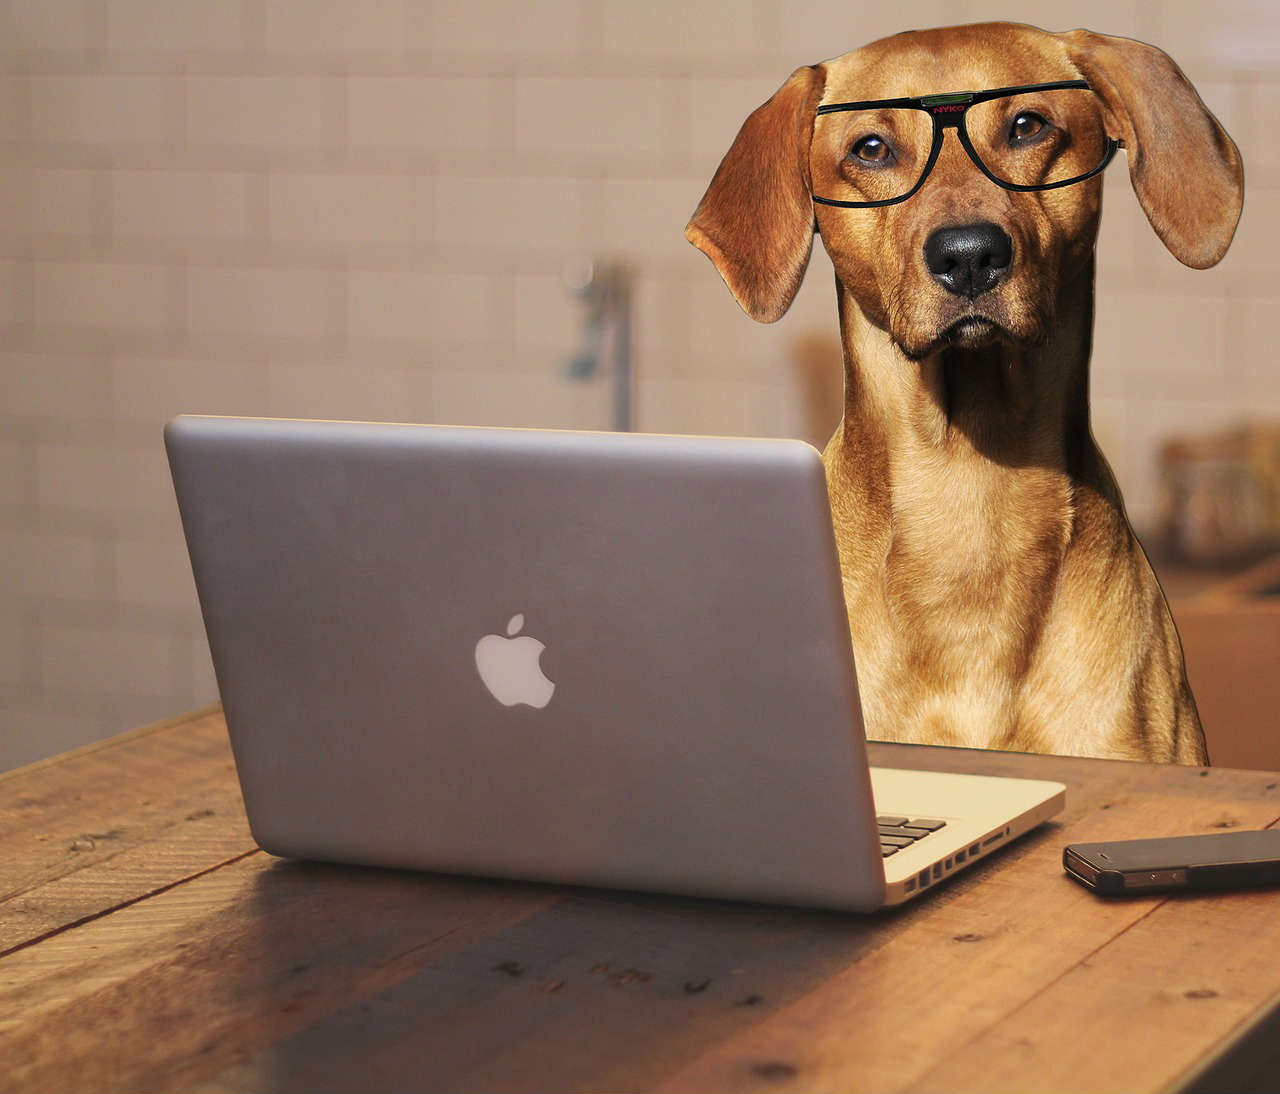 Dog-Friendly Coworking Spaces: Our Top Picks by City!